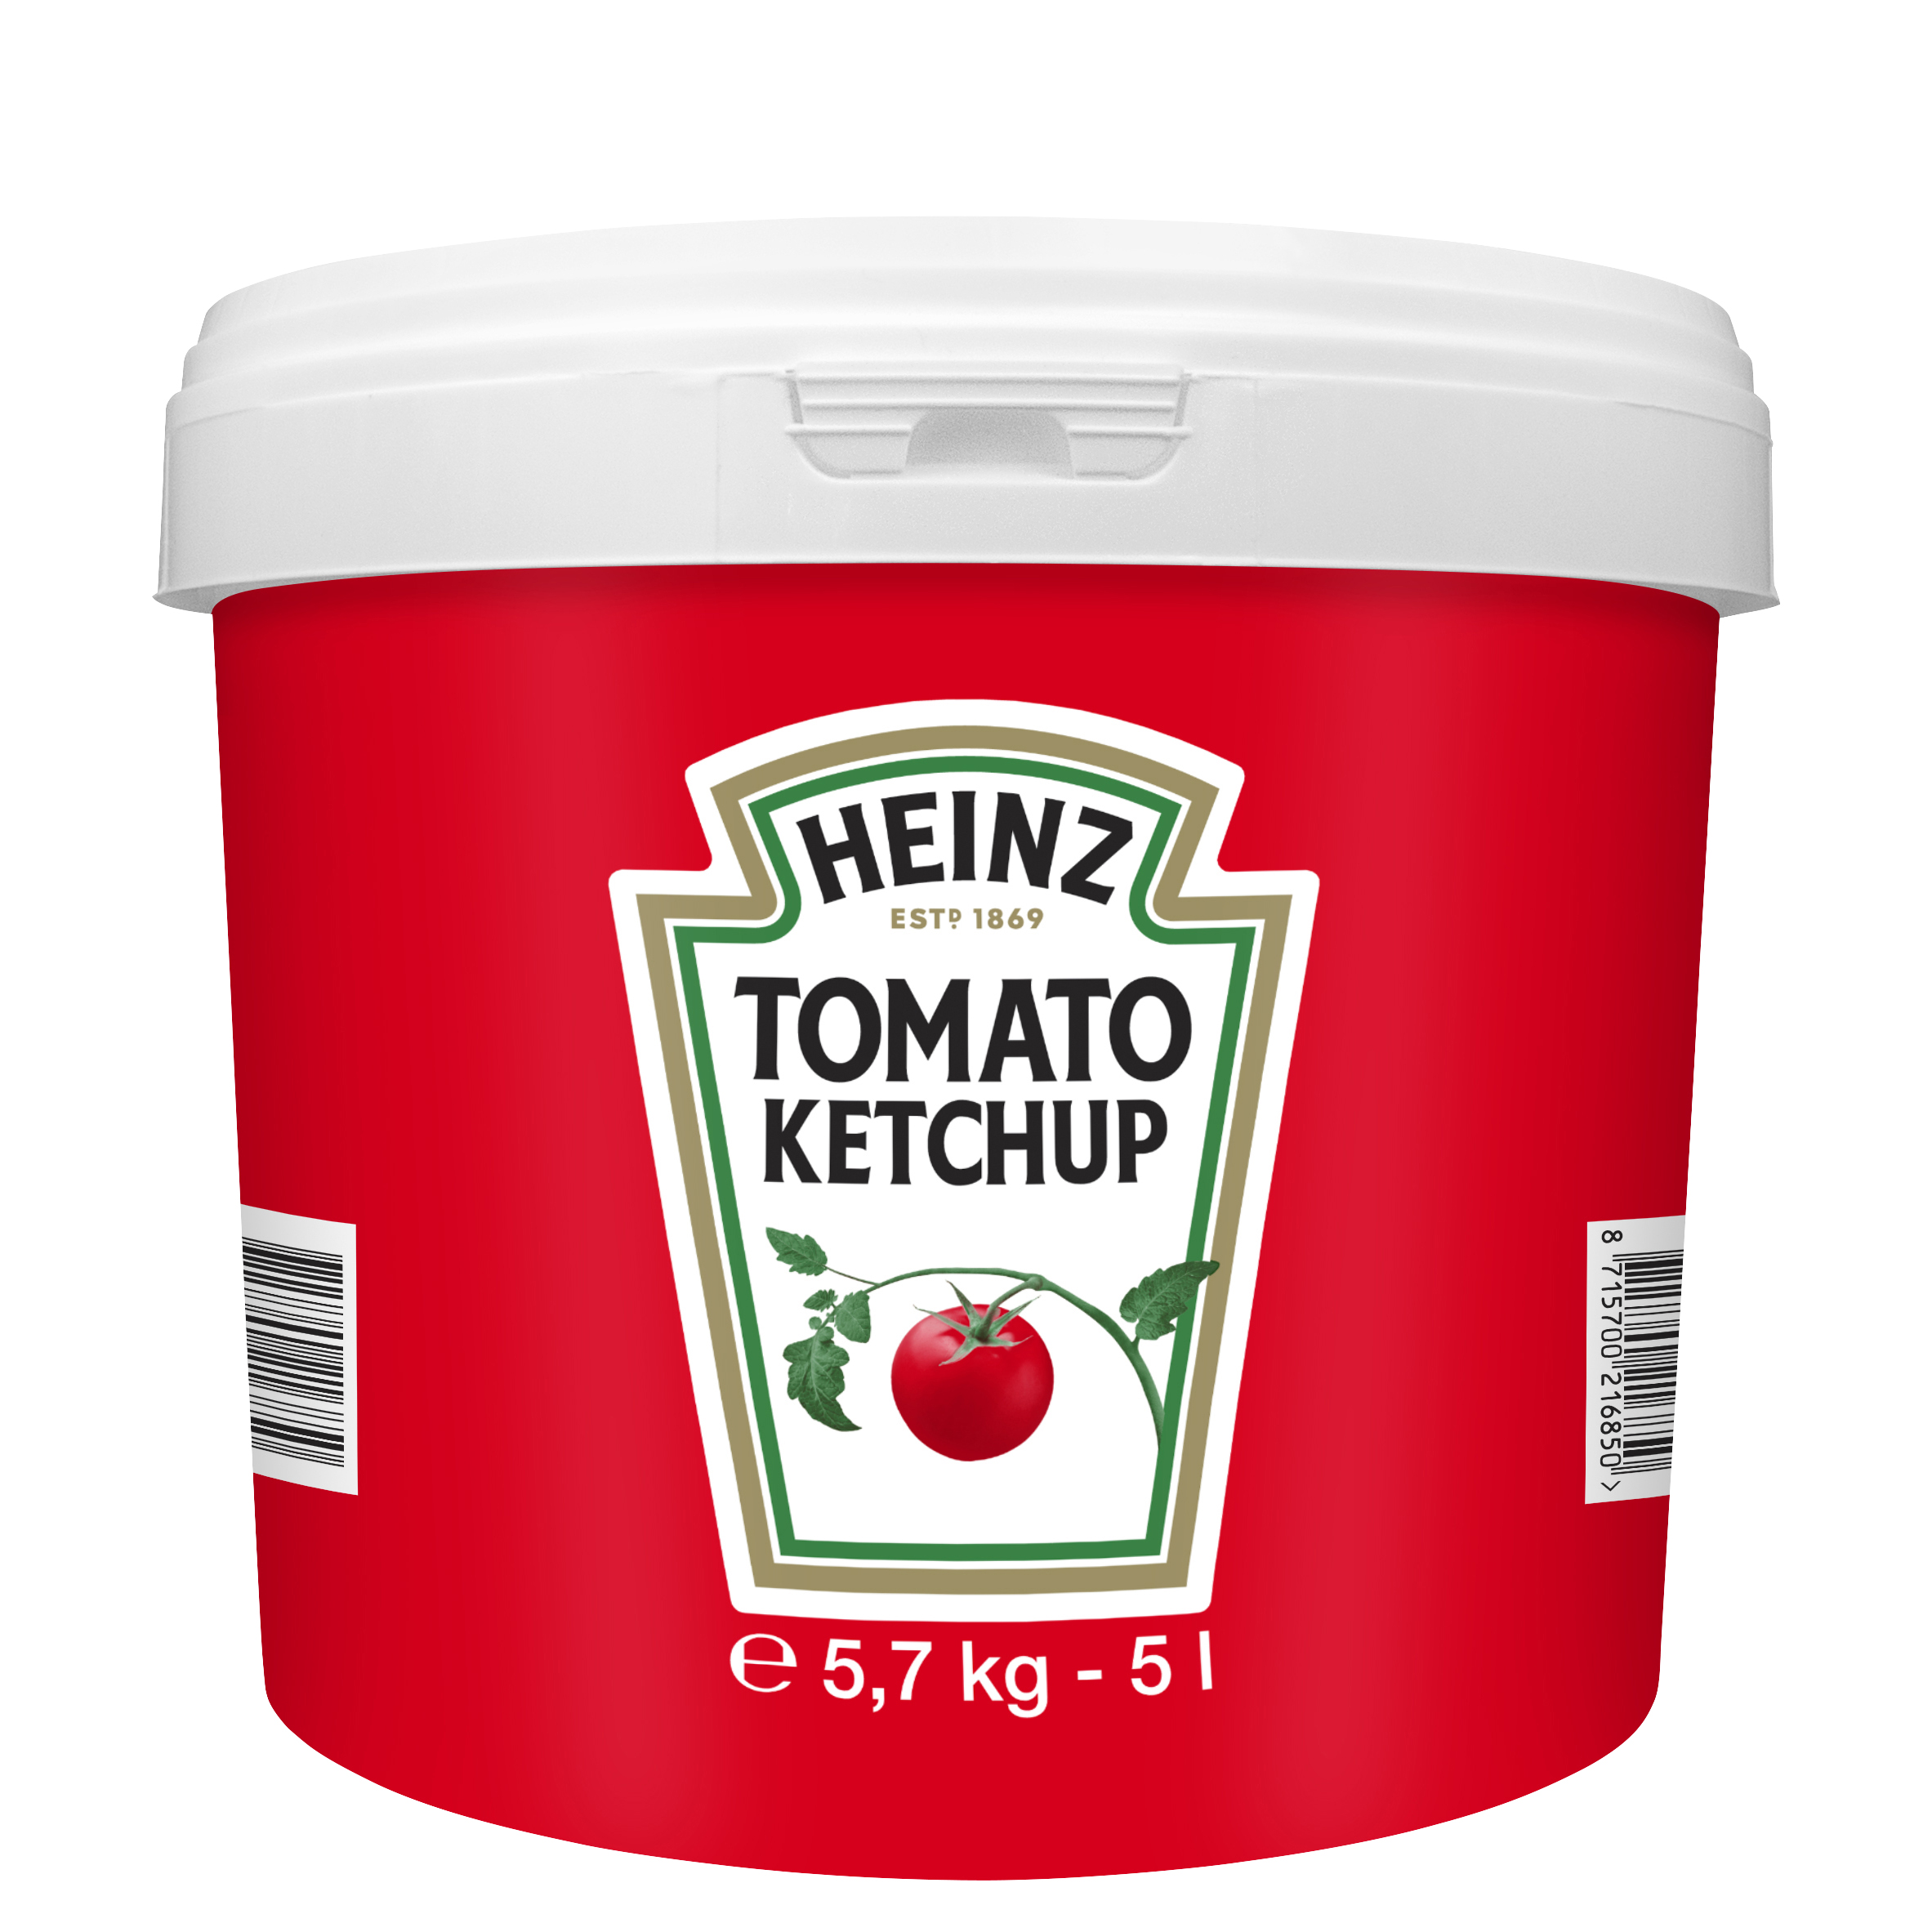 Heinz Ketchup 5L image